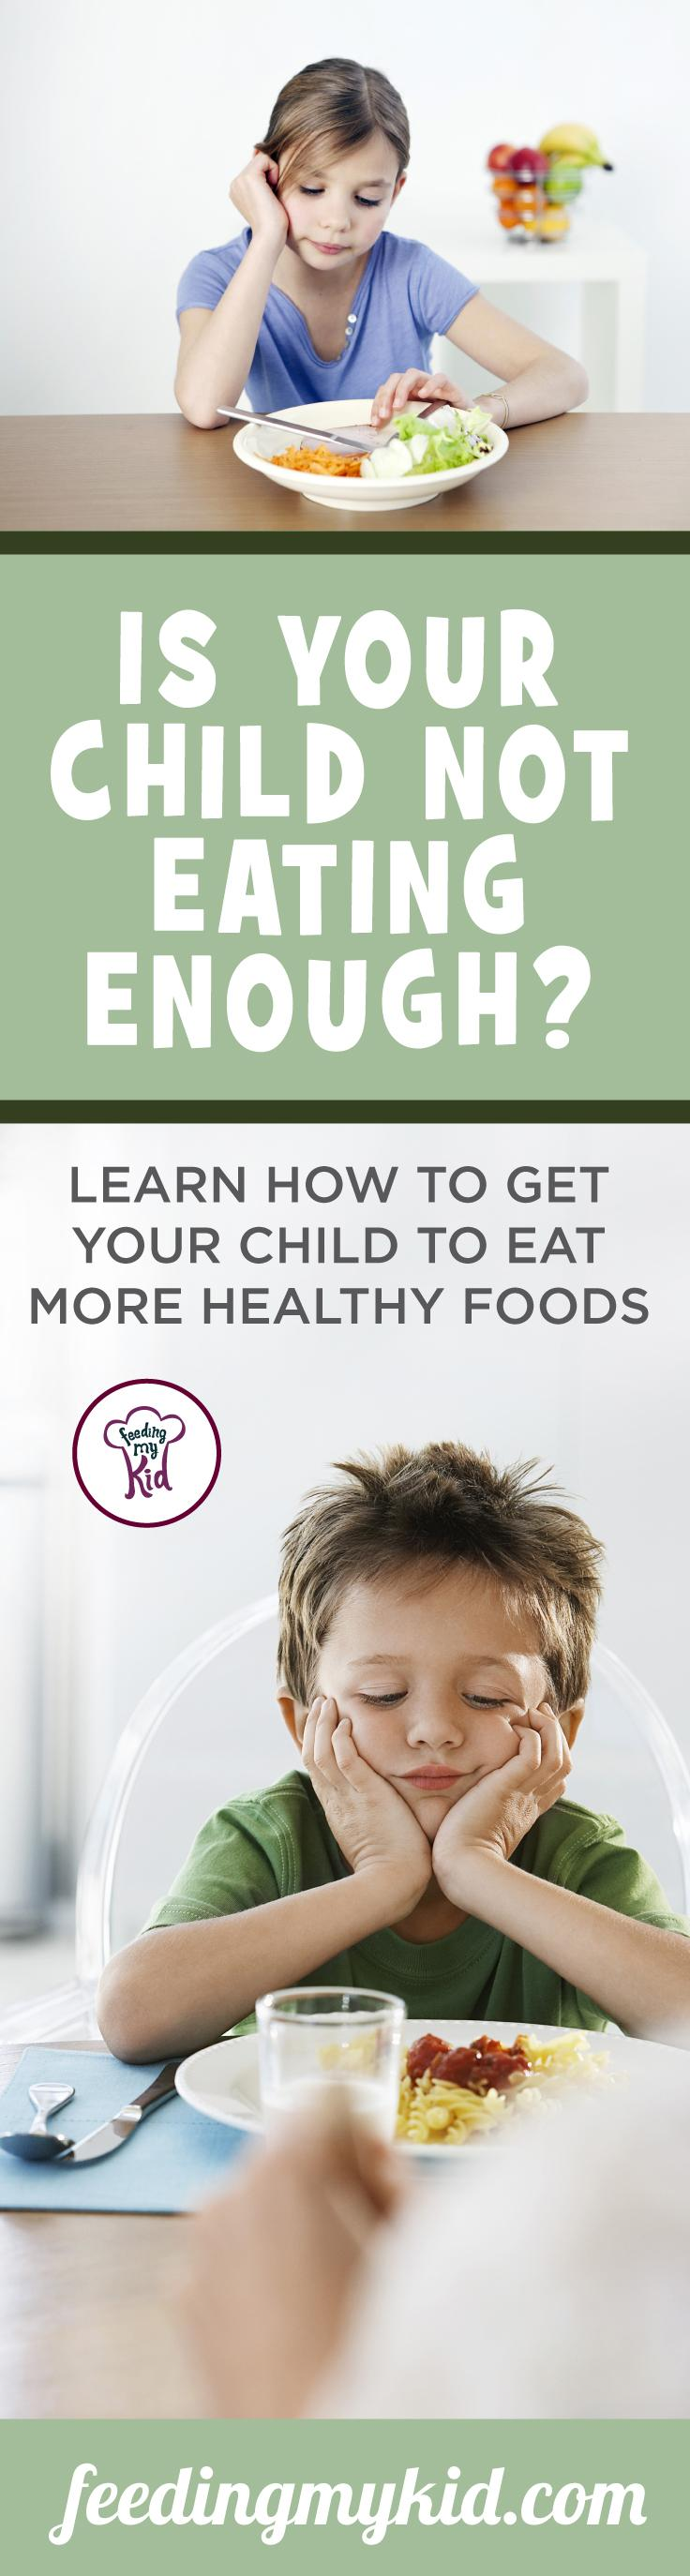 This is a must pin! Is your child an under eater? Everything you'll need to know about how to improve your child's eating habits. Feeding My Kid is a website for parents, filled with all the information you need about how to raise your kids, from healthy tips to nutritious recipes. #parenting #healthyeating #undereater